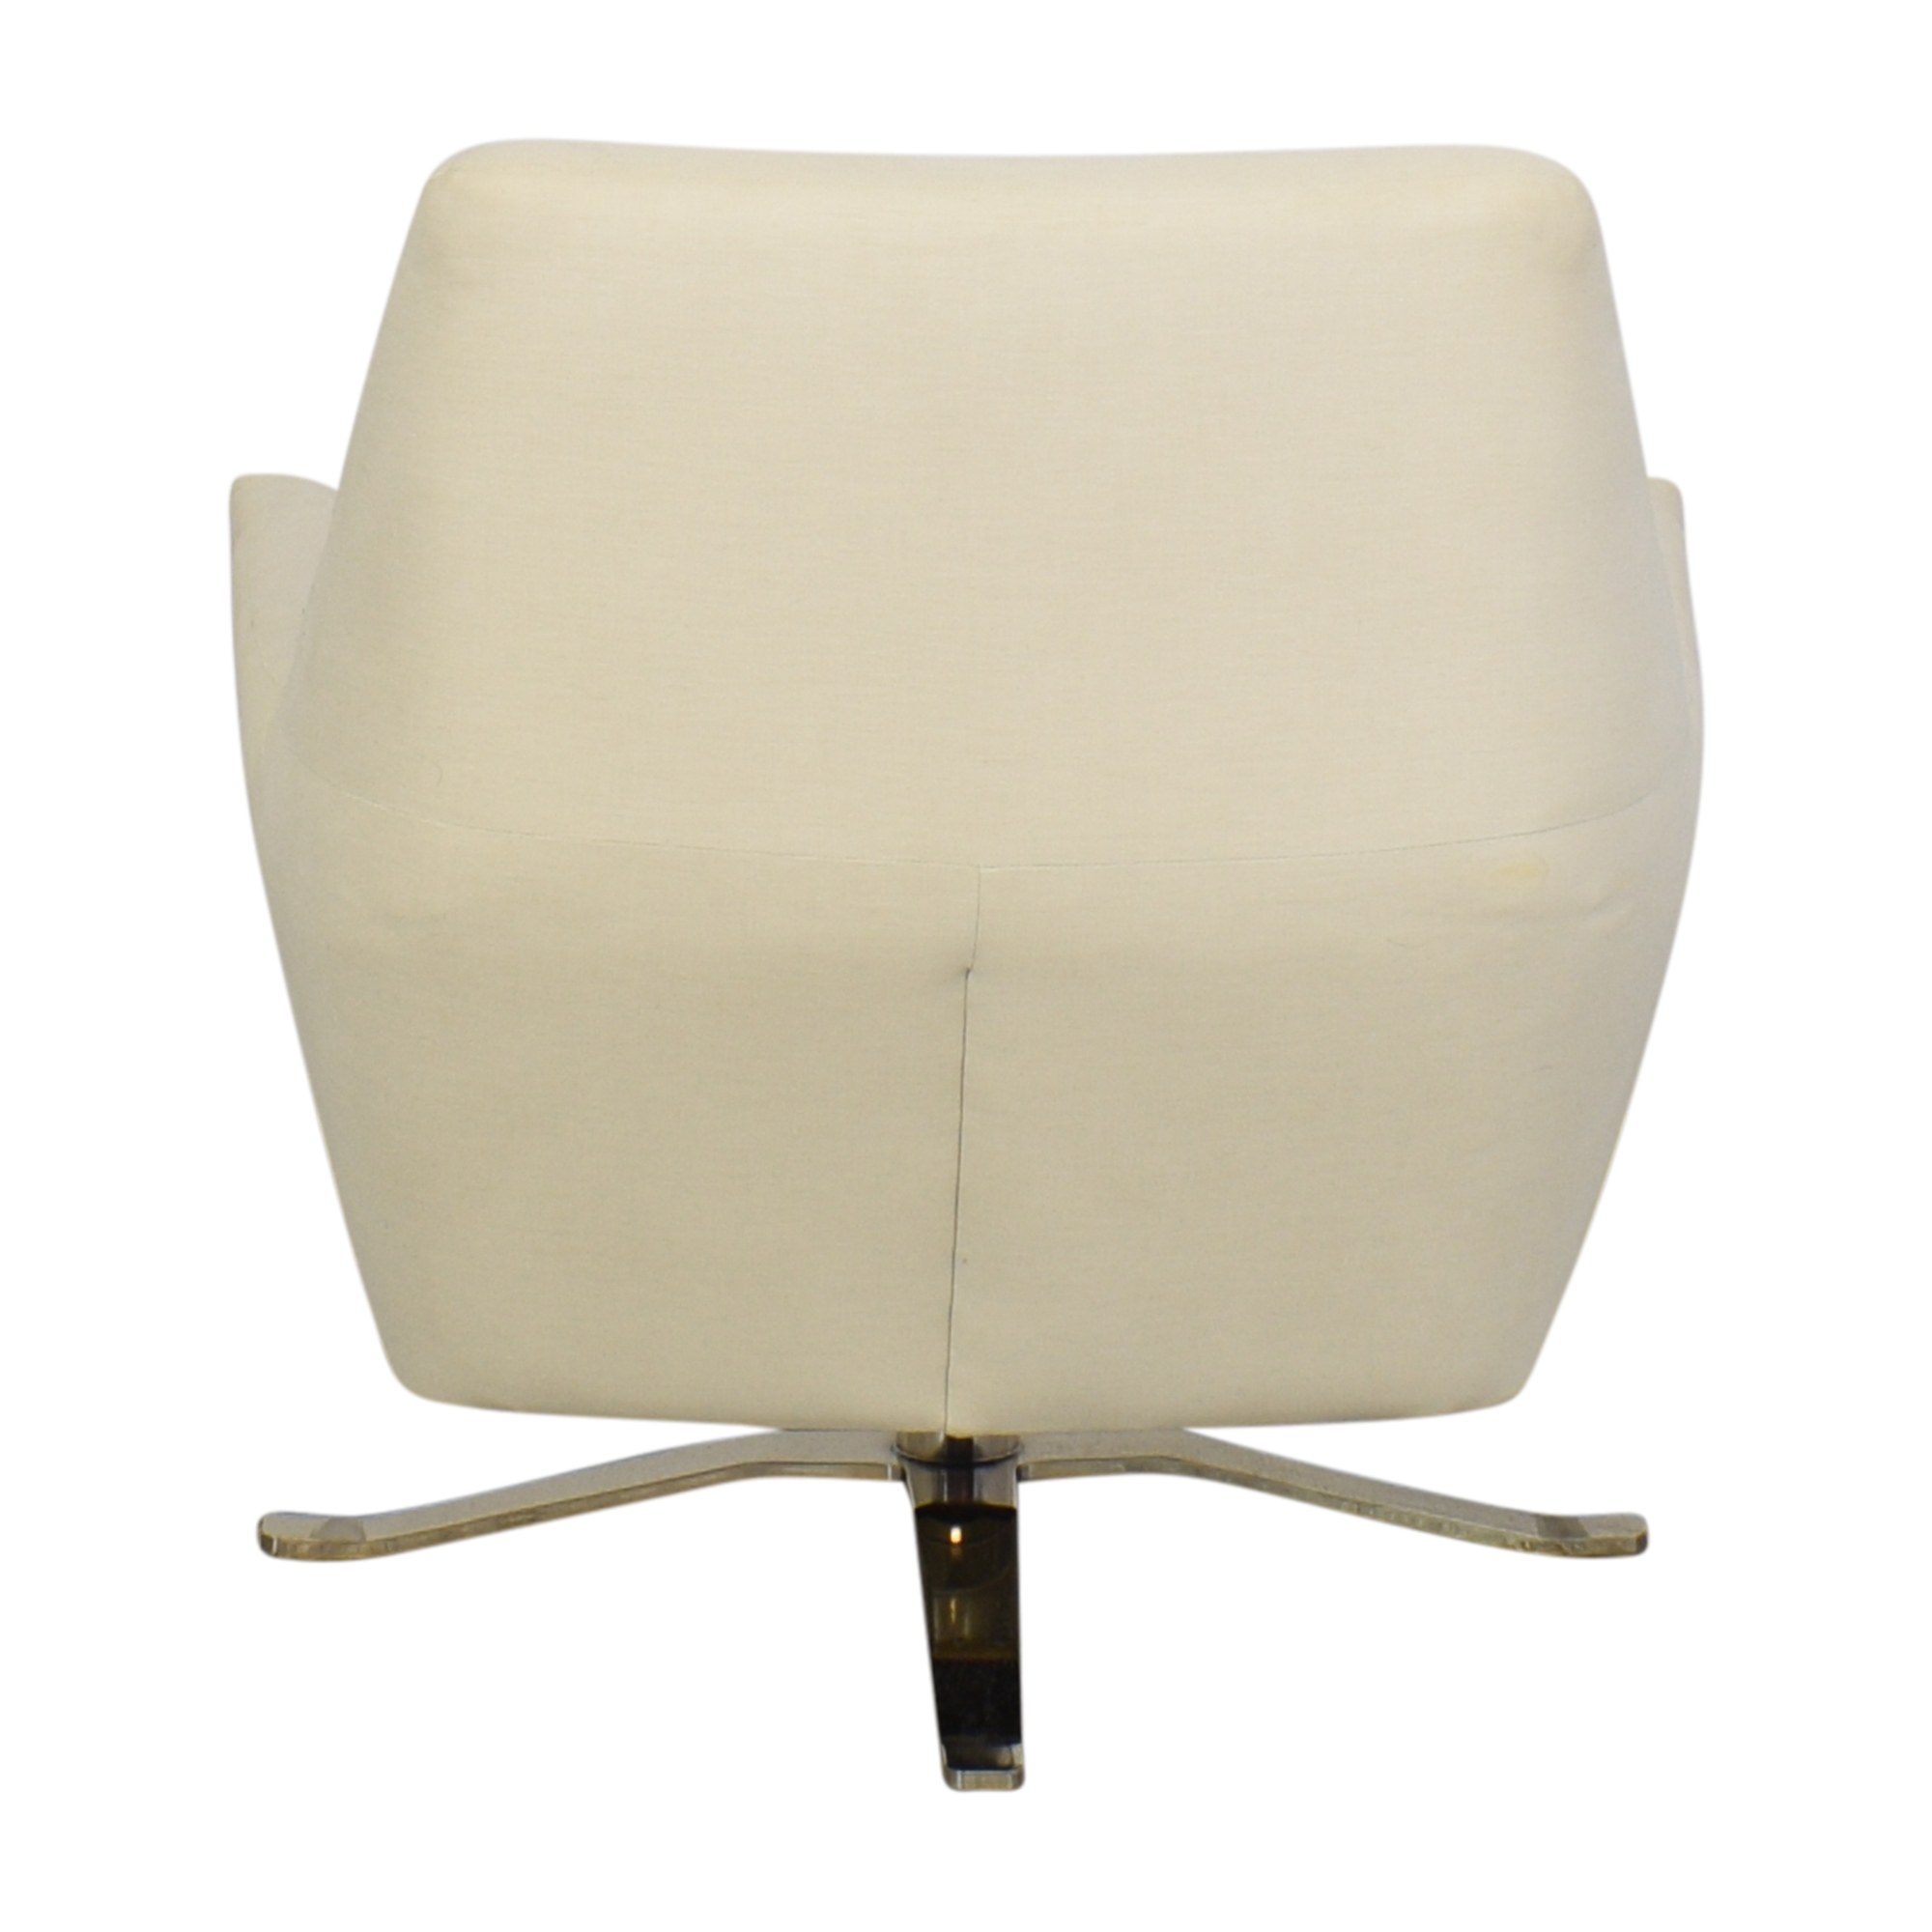 West Elm West Elm Lucas Swivel Chair cream